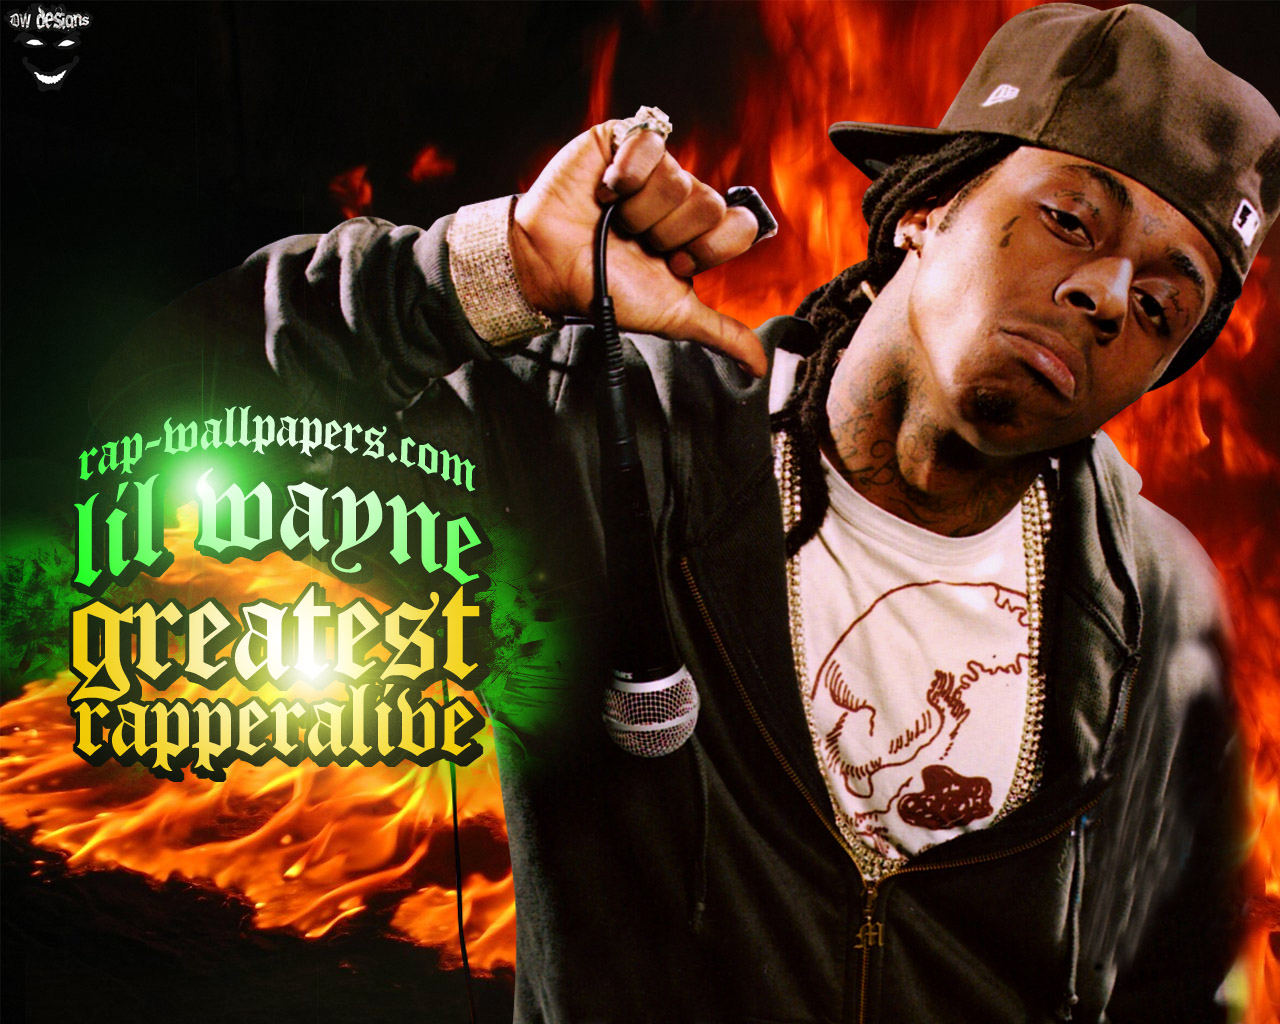 download lil wayne wallpapers and many more hip hop related wallpapers 1280x1024